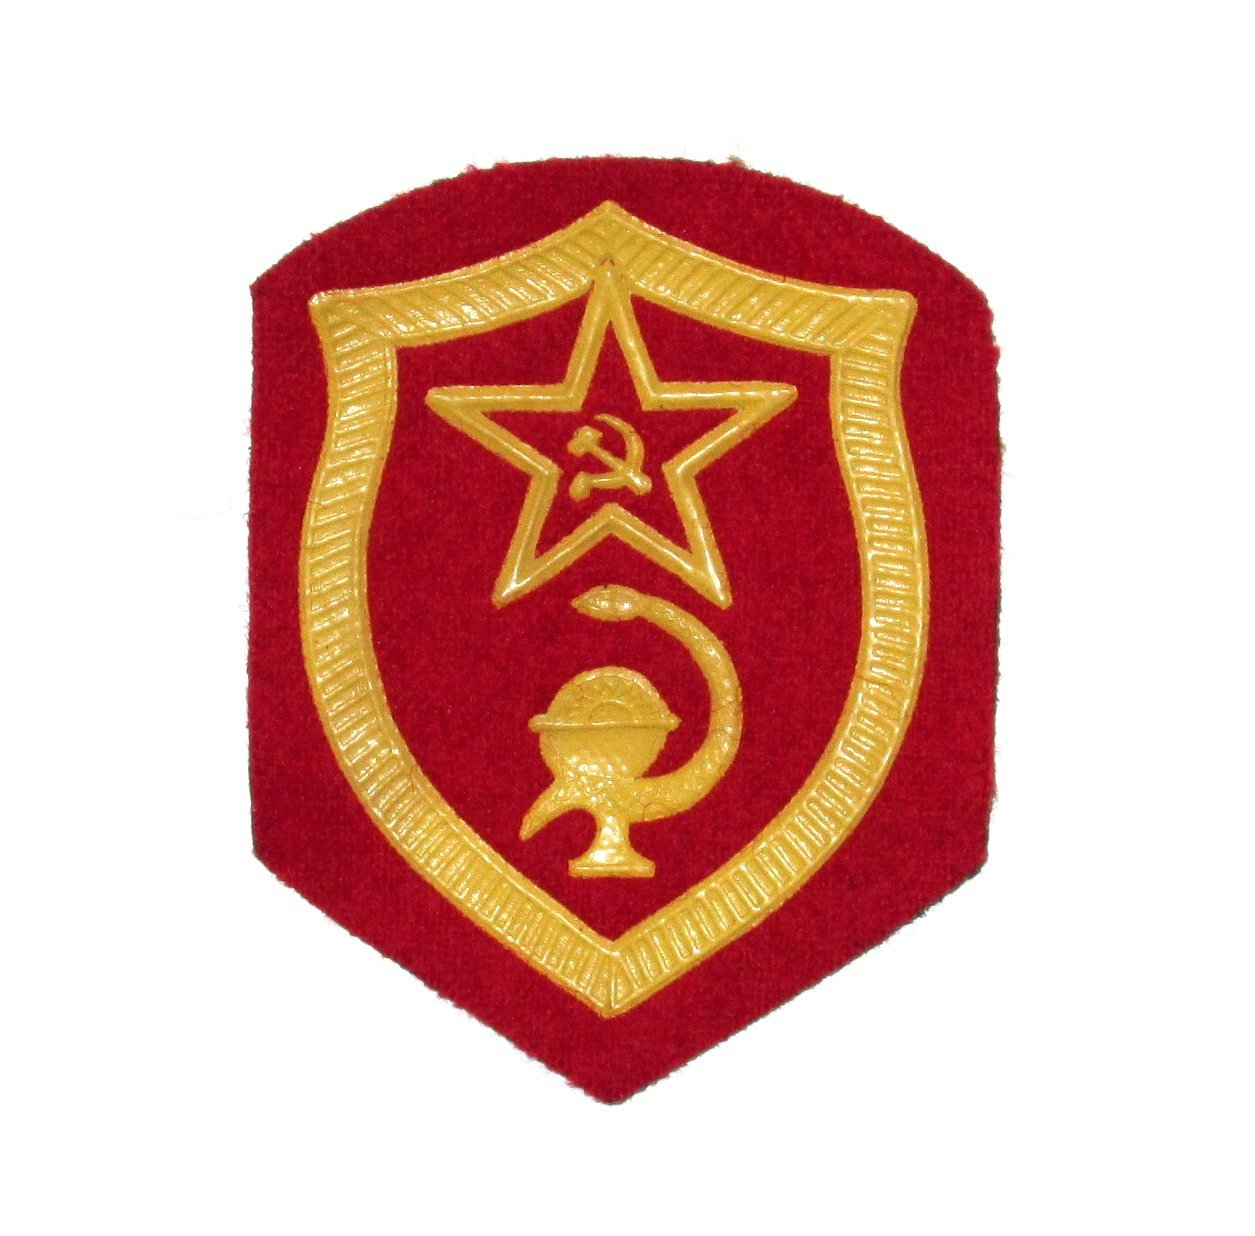 Original Patch Army Soviet Union Communist Russia - USSR - Medical Troops